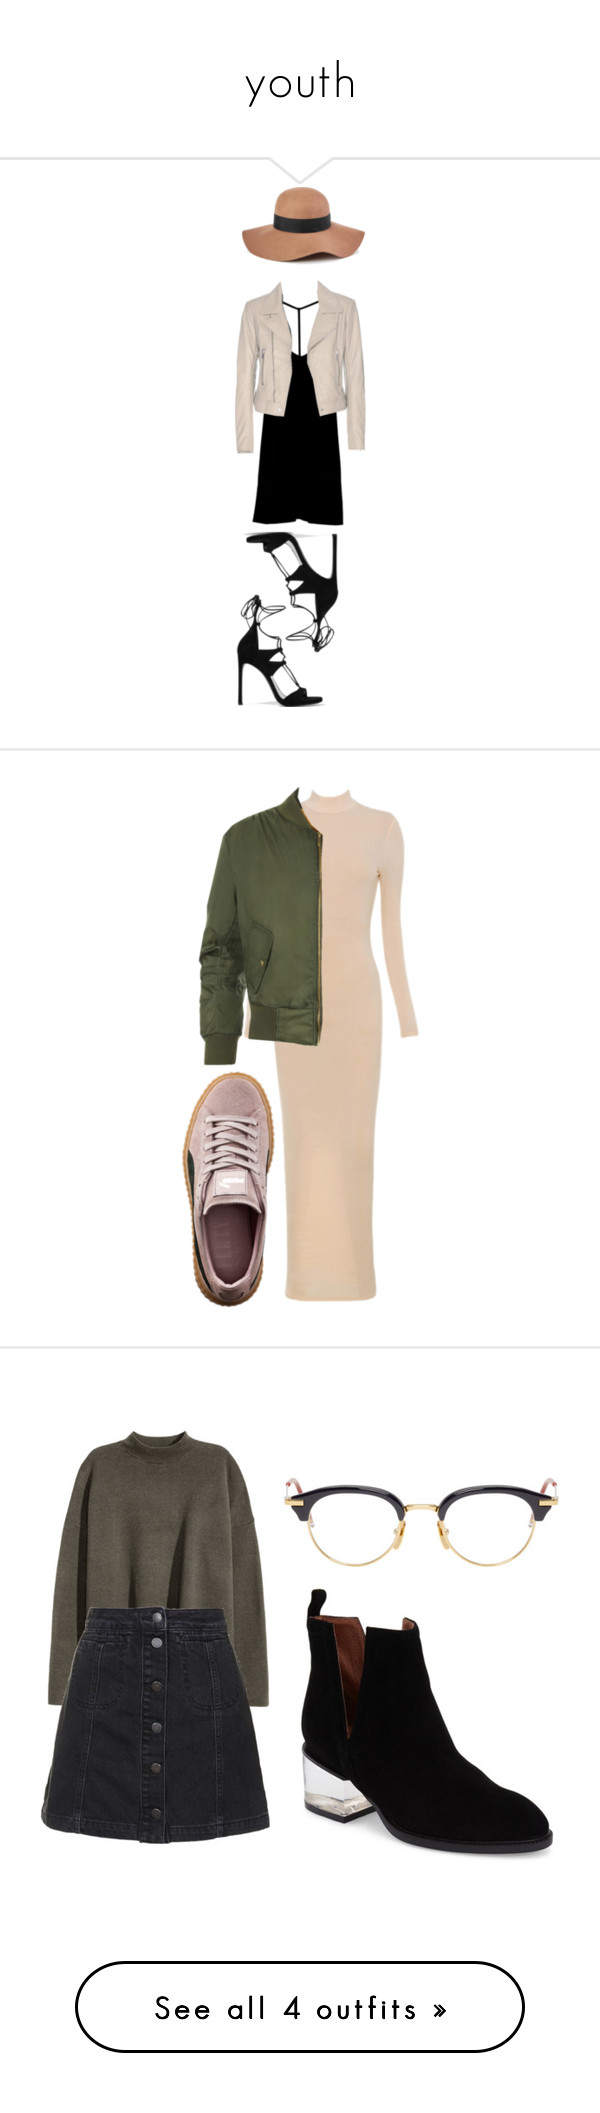 """""""youth"""" by leilaprins ❤ liked on Polyvore featuring RVCA, Balenciaga, Stuart Weitzman, Reiss, WearAll, Puma, Topshop, Thom Browne, Jeffrey Campbell and H&M"""